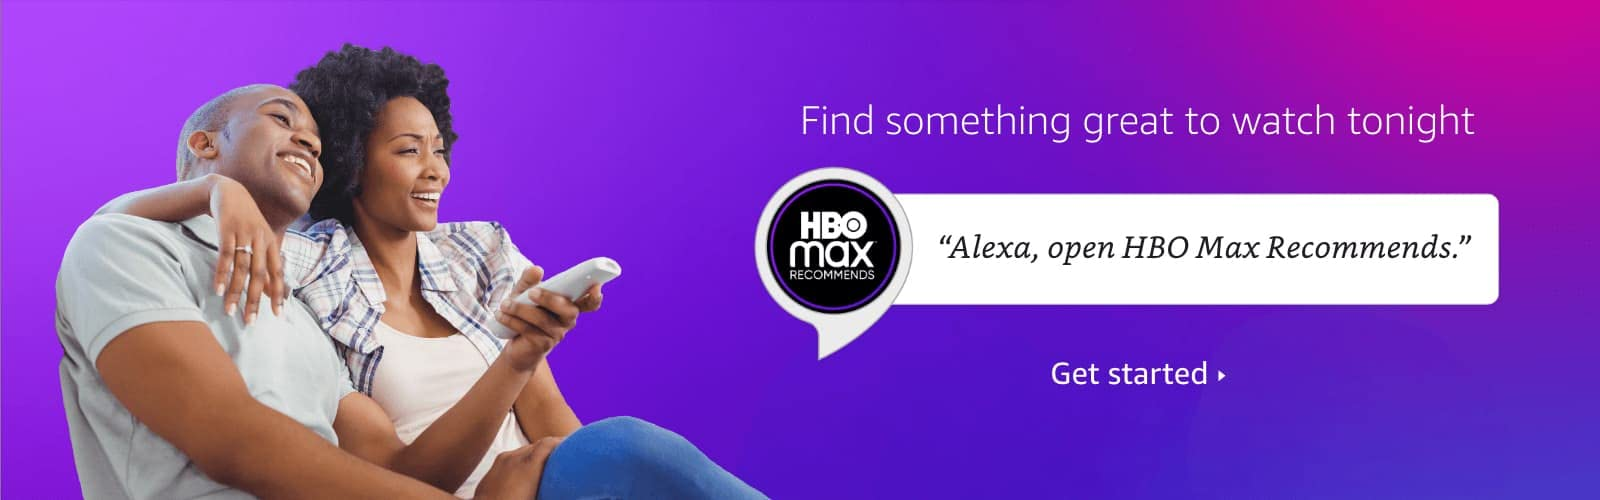 Alexa open HBO Max recommends.